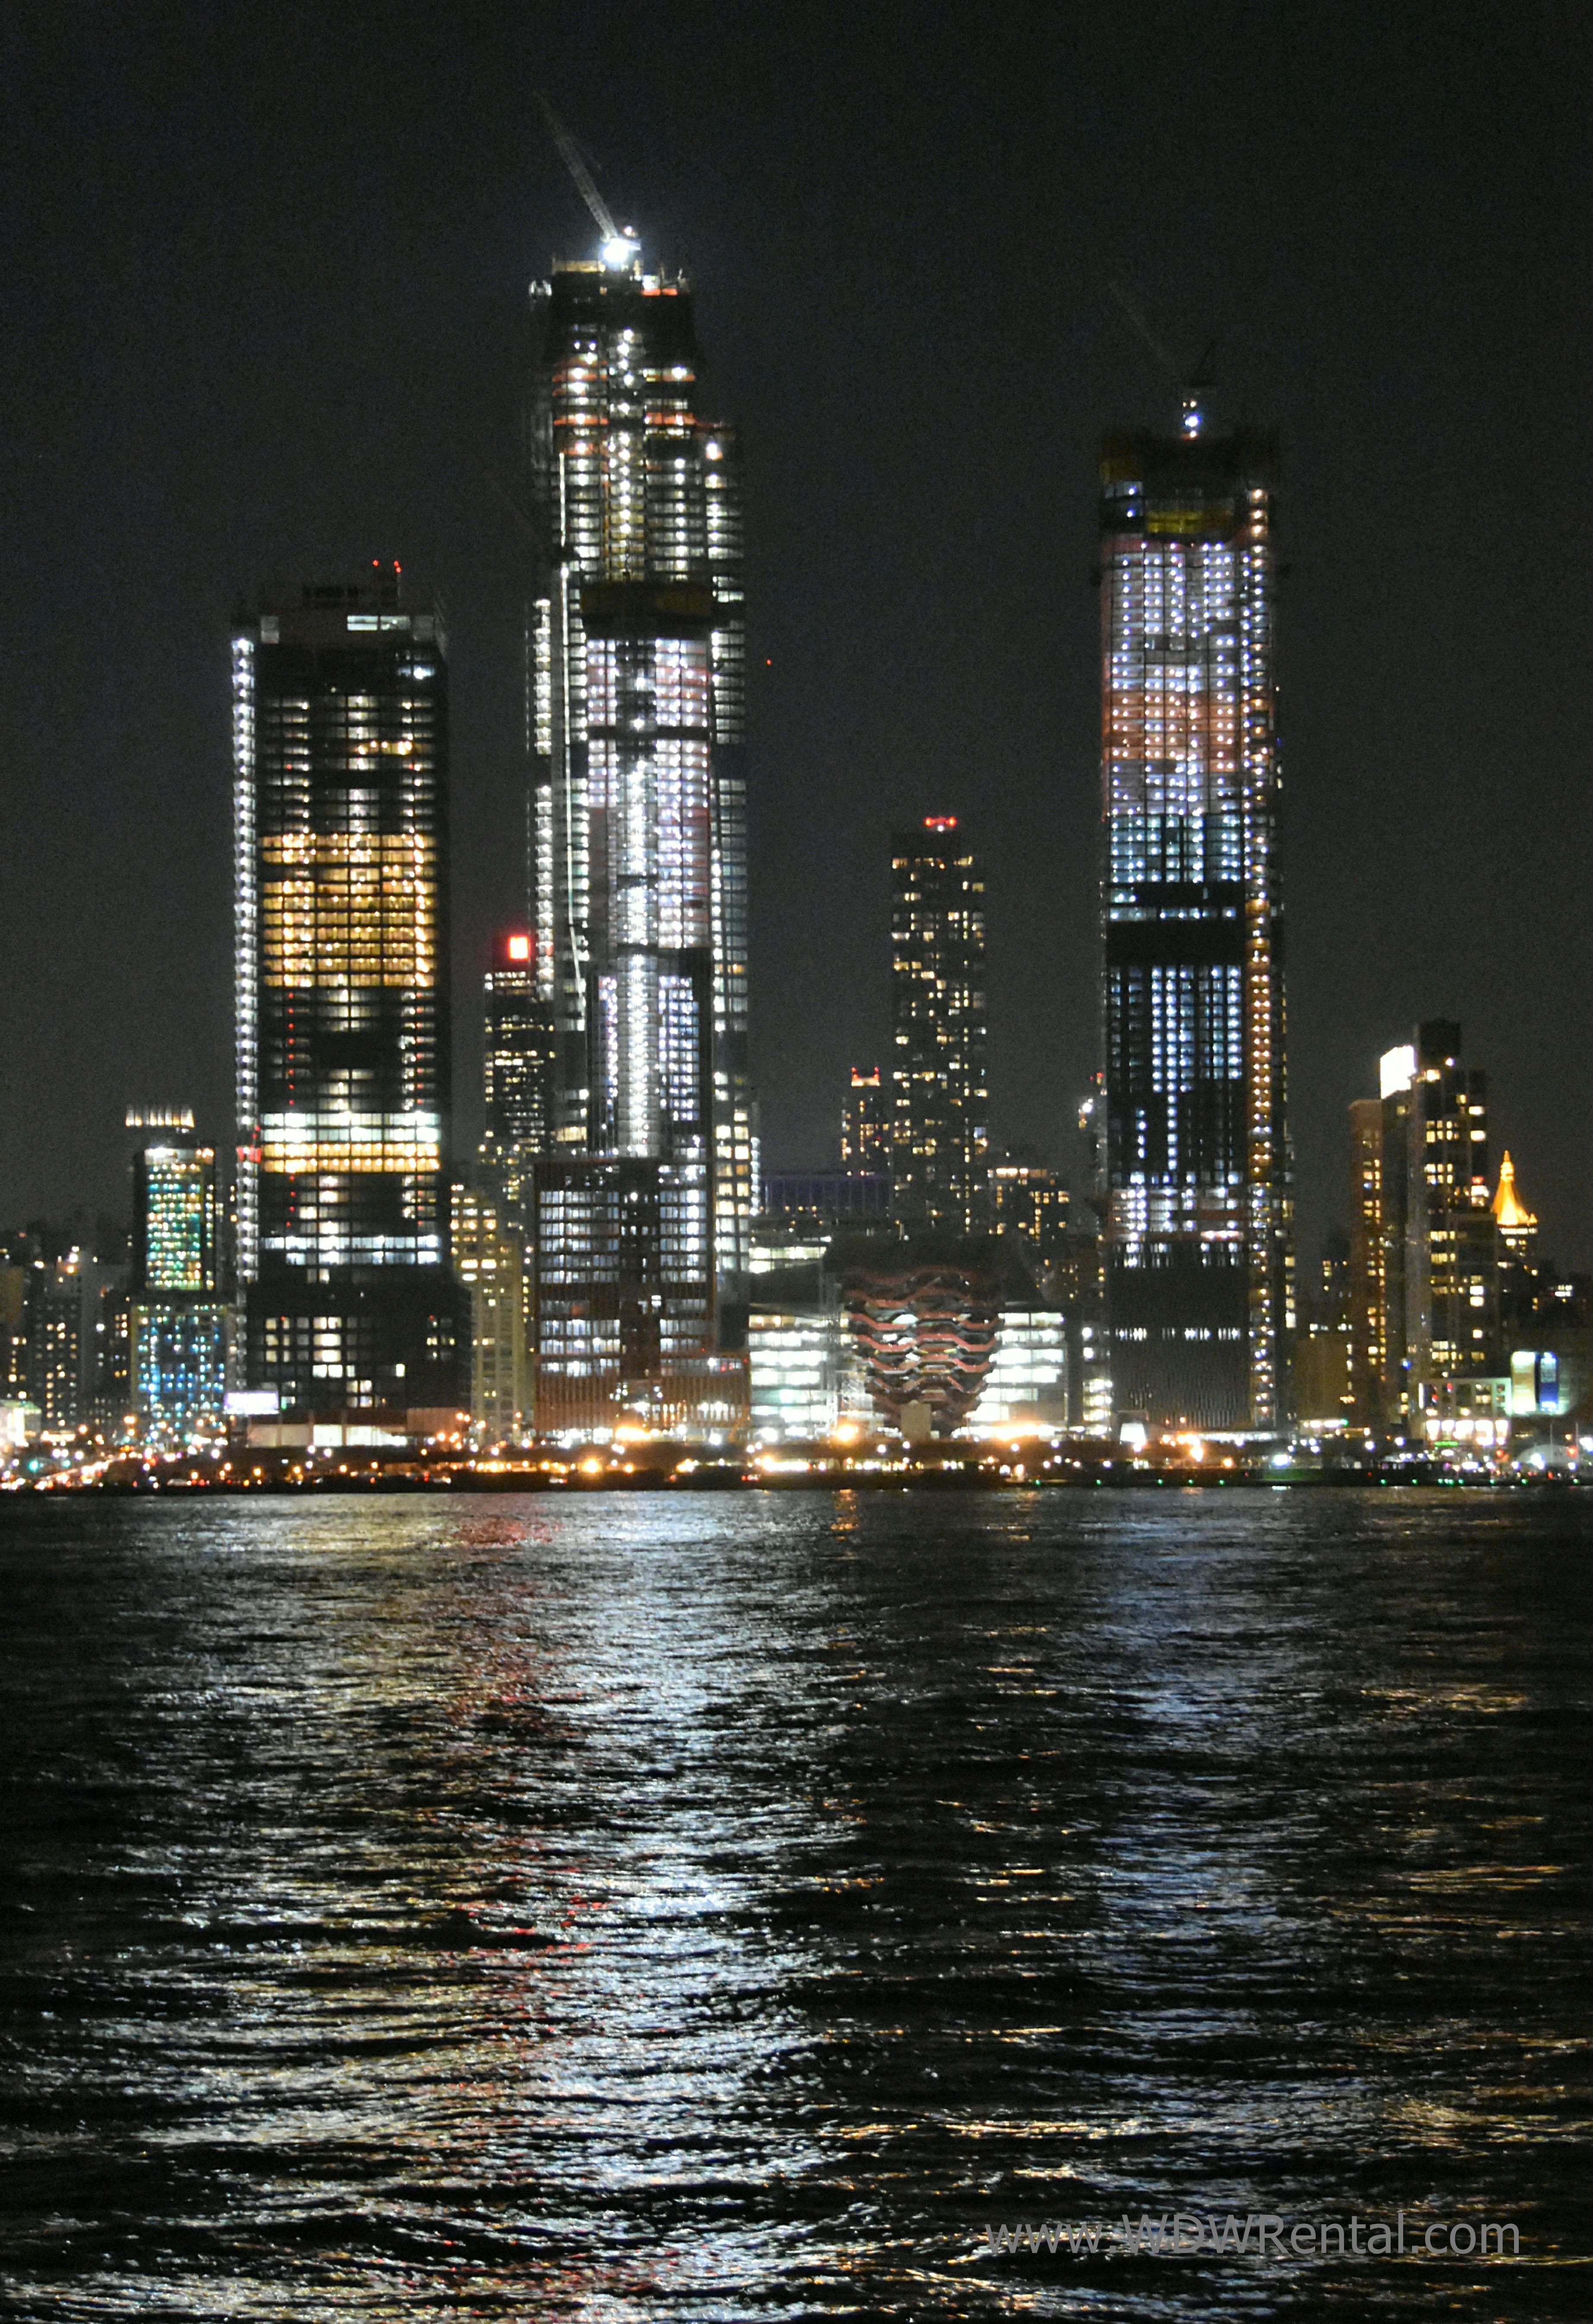 New York Ny City Skyline At Night As Taken From The Chart